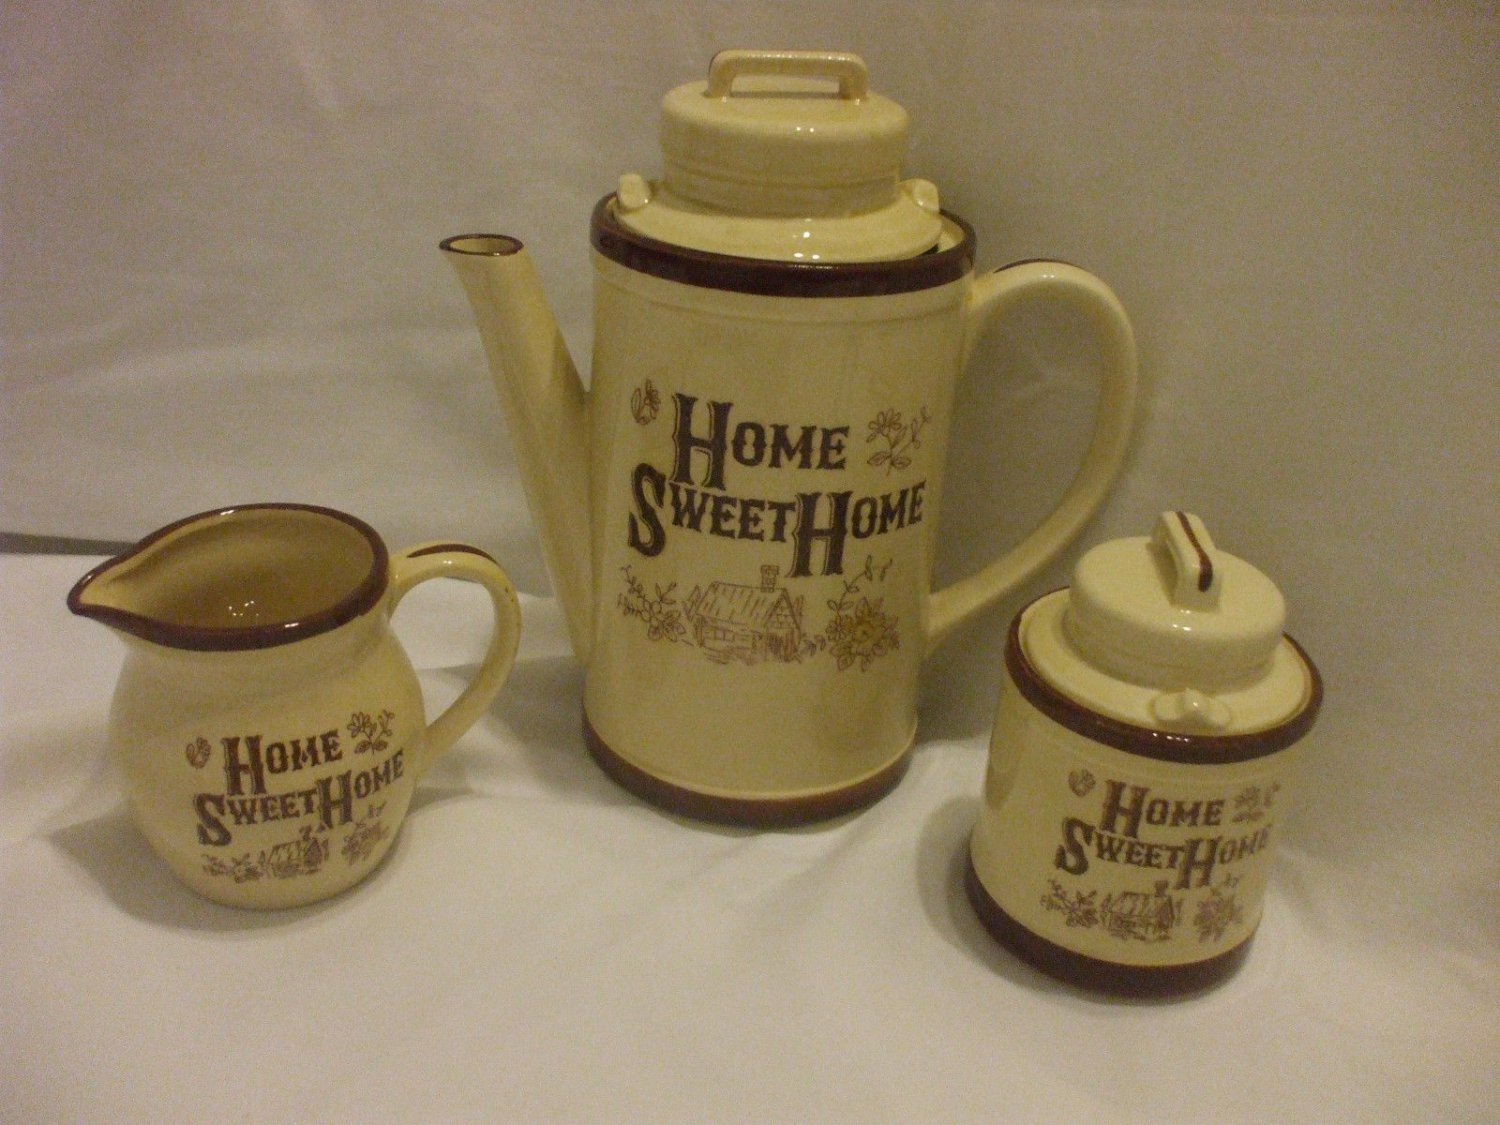 Shabby Chic 5 pcs Coffee/Tea Set With Lids Sugar Bowl And Creamer Beige And Brown Porcelain